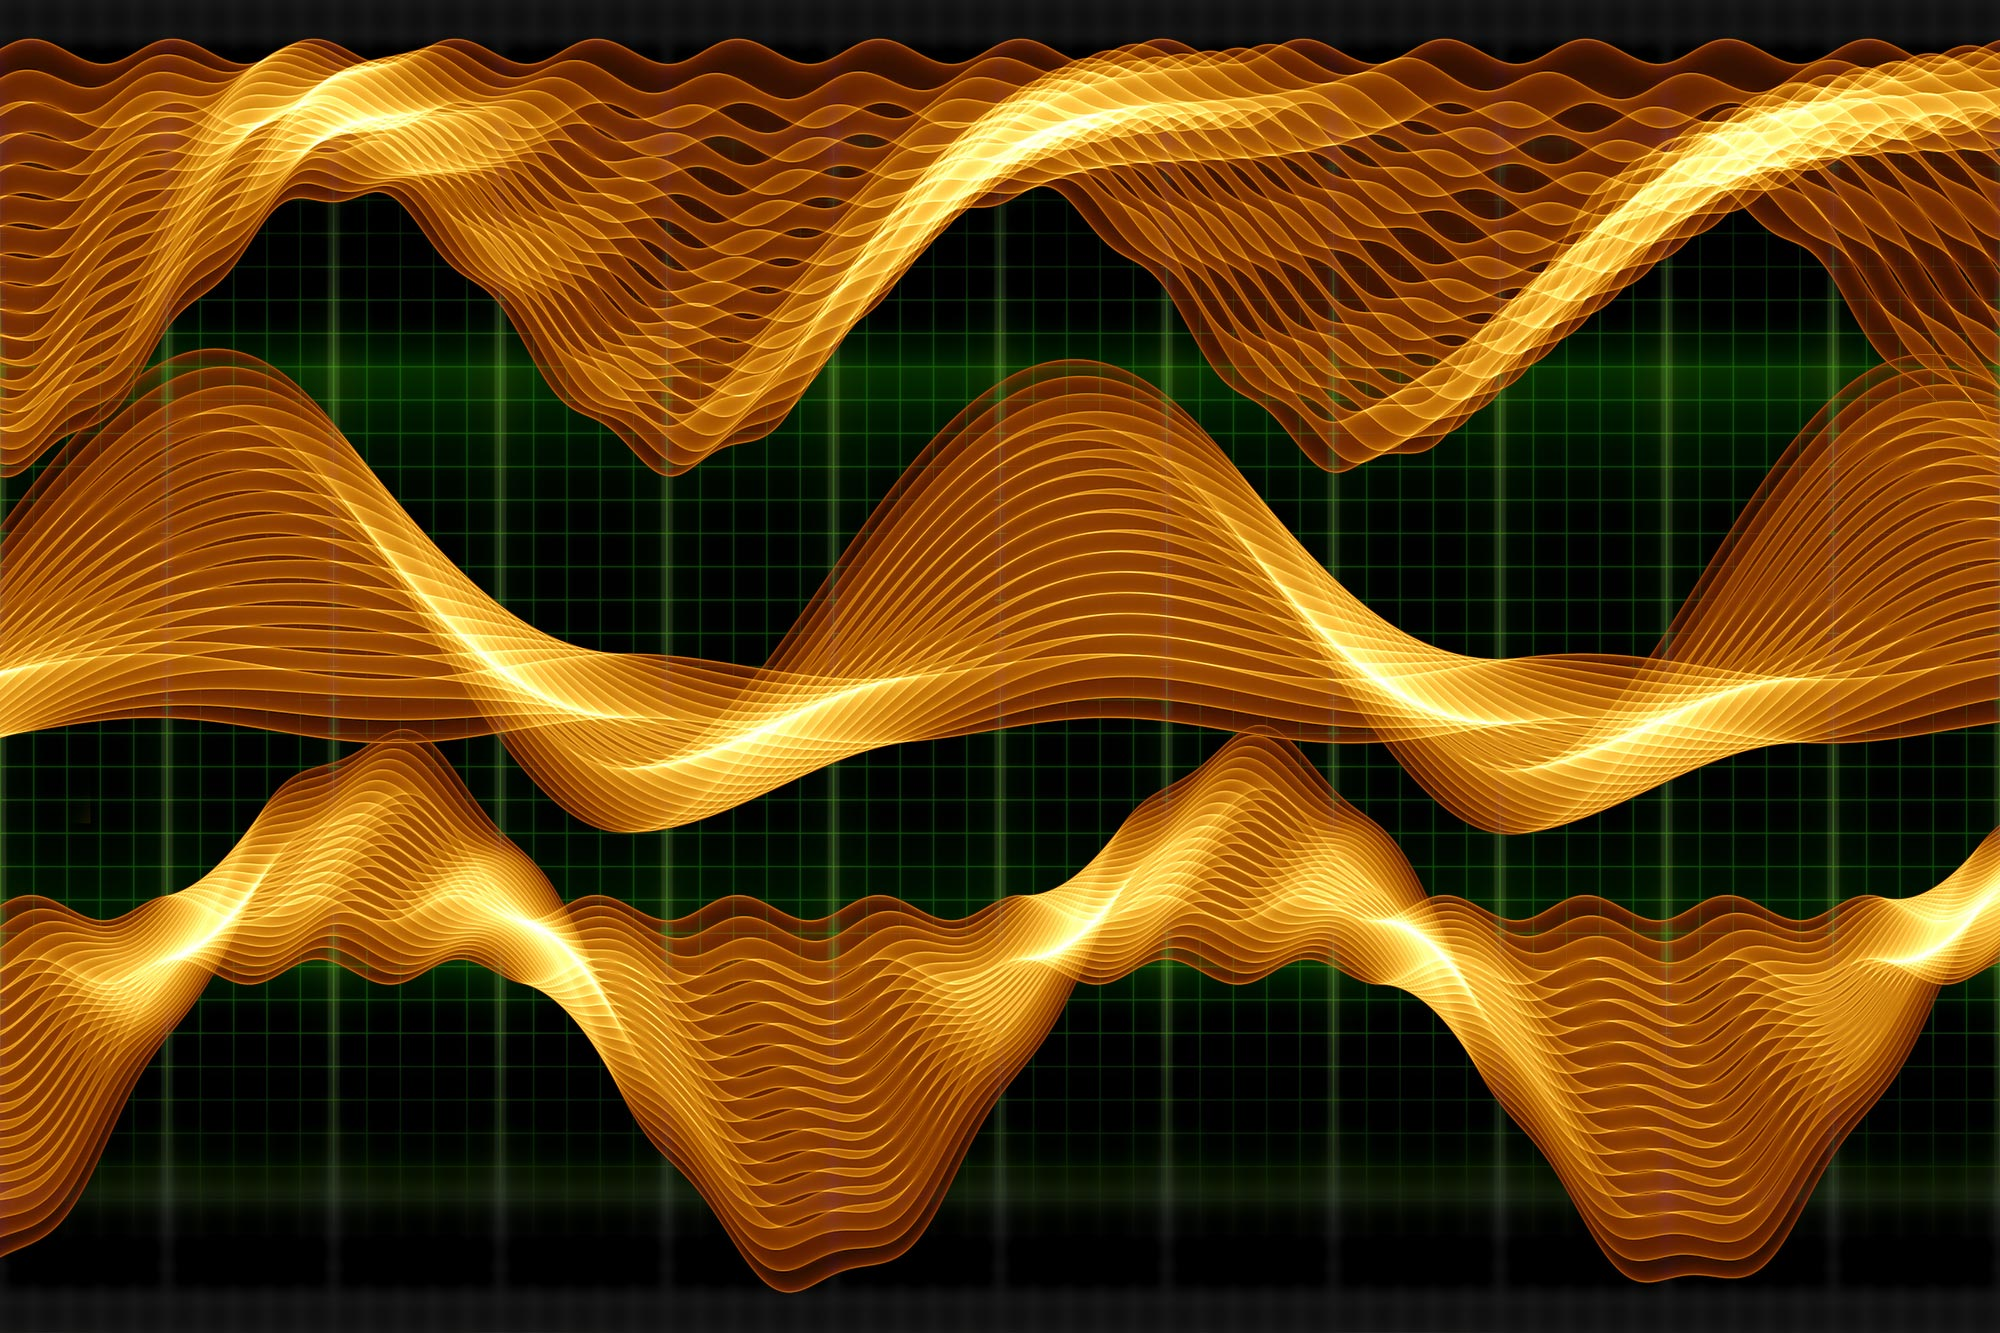 Frequency Waves.'